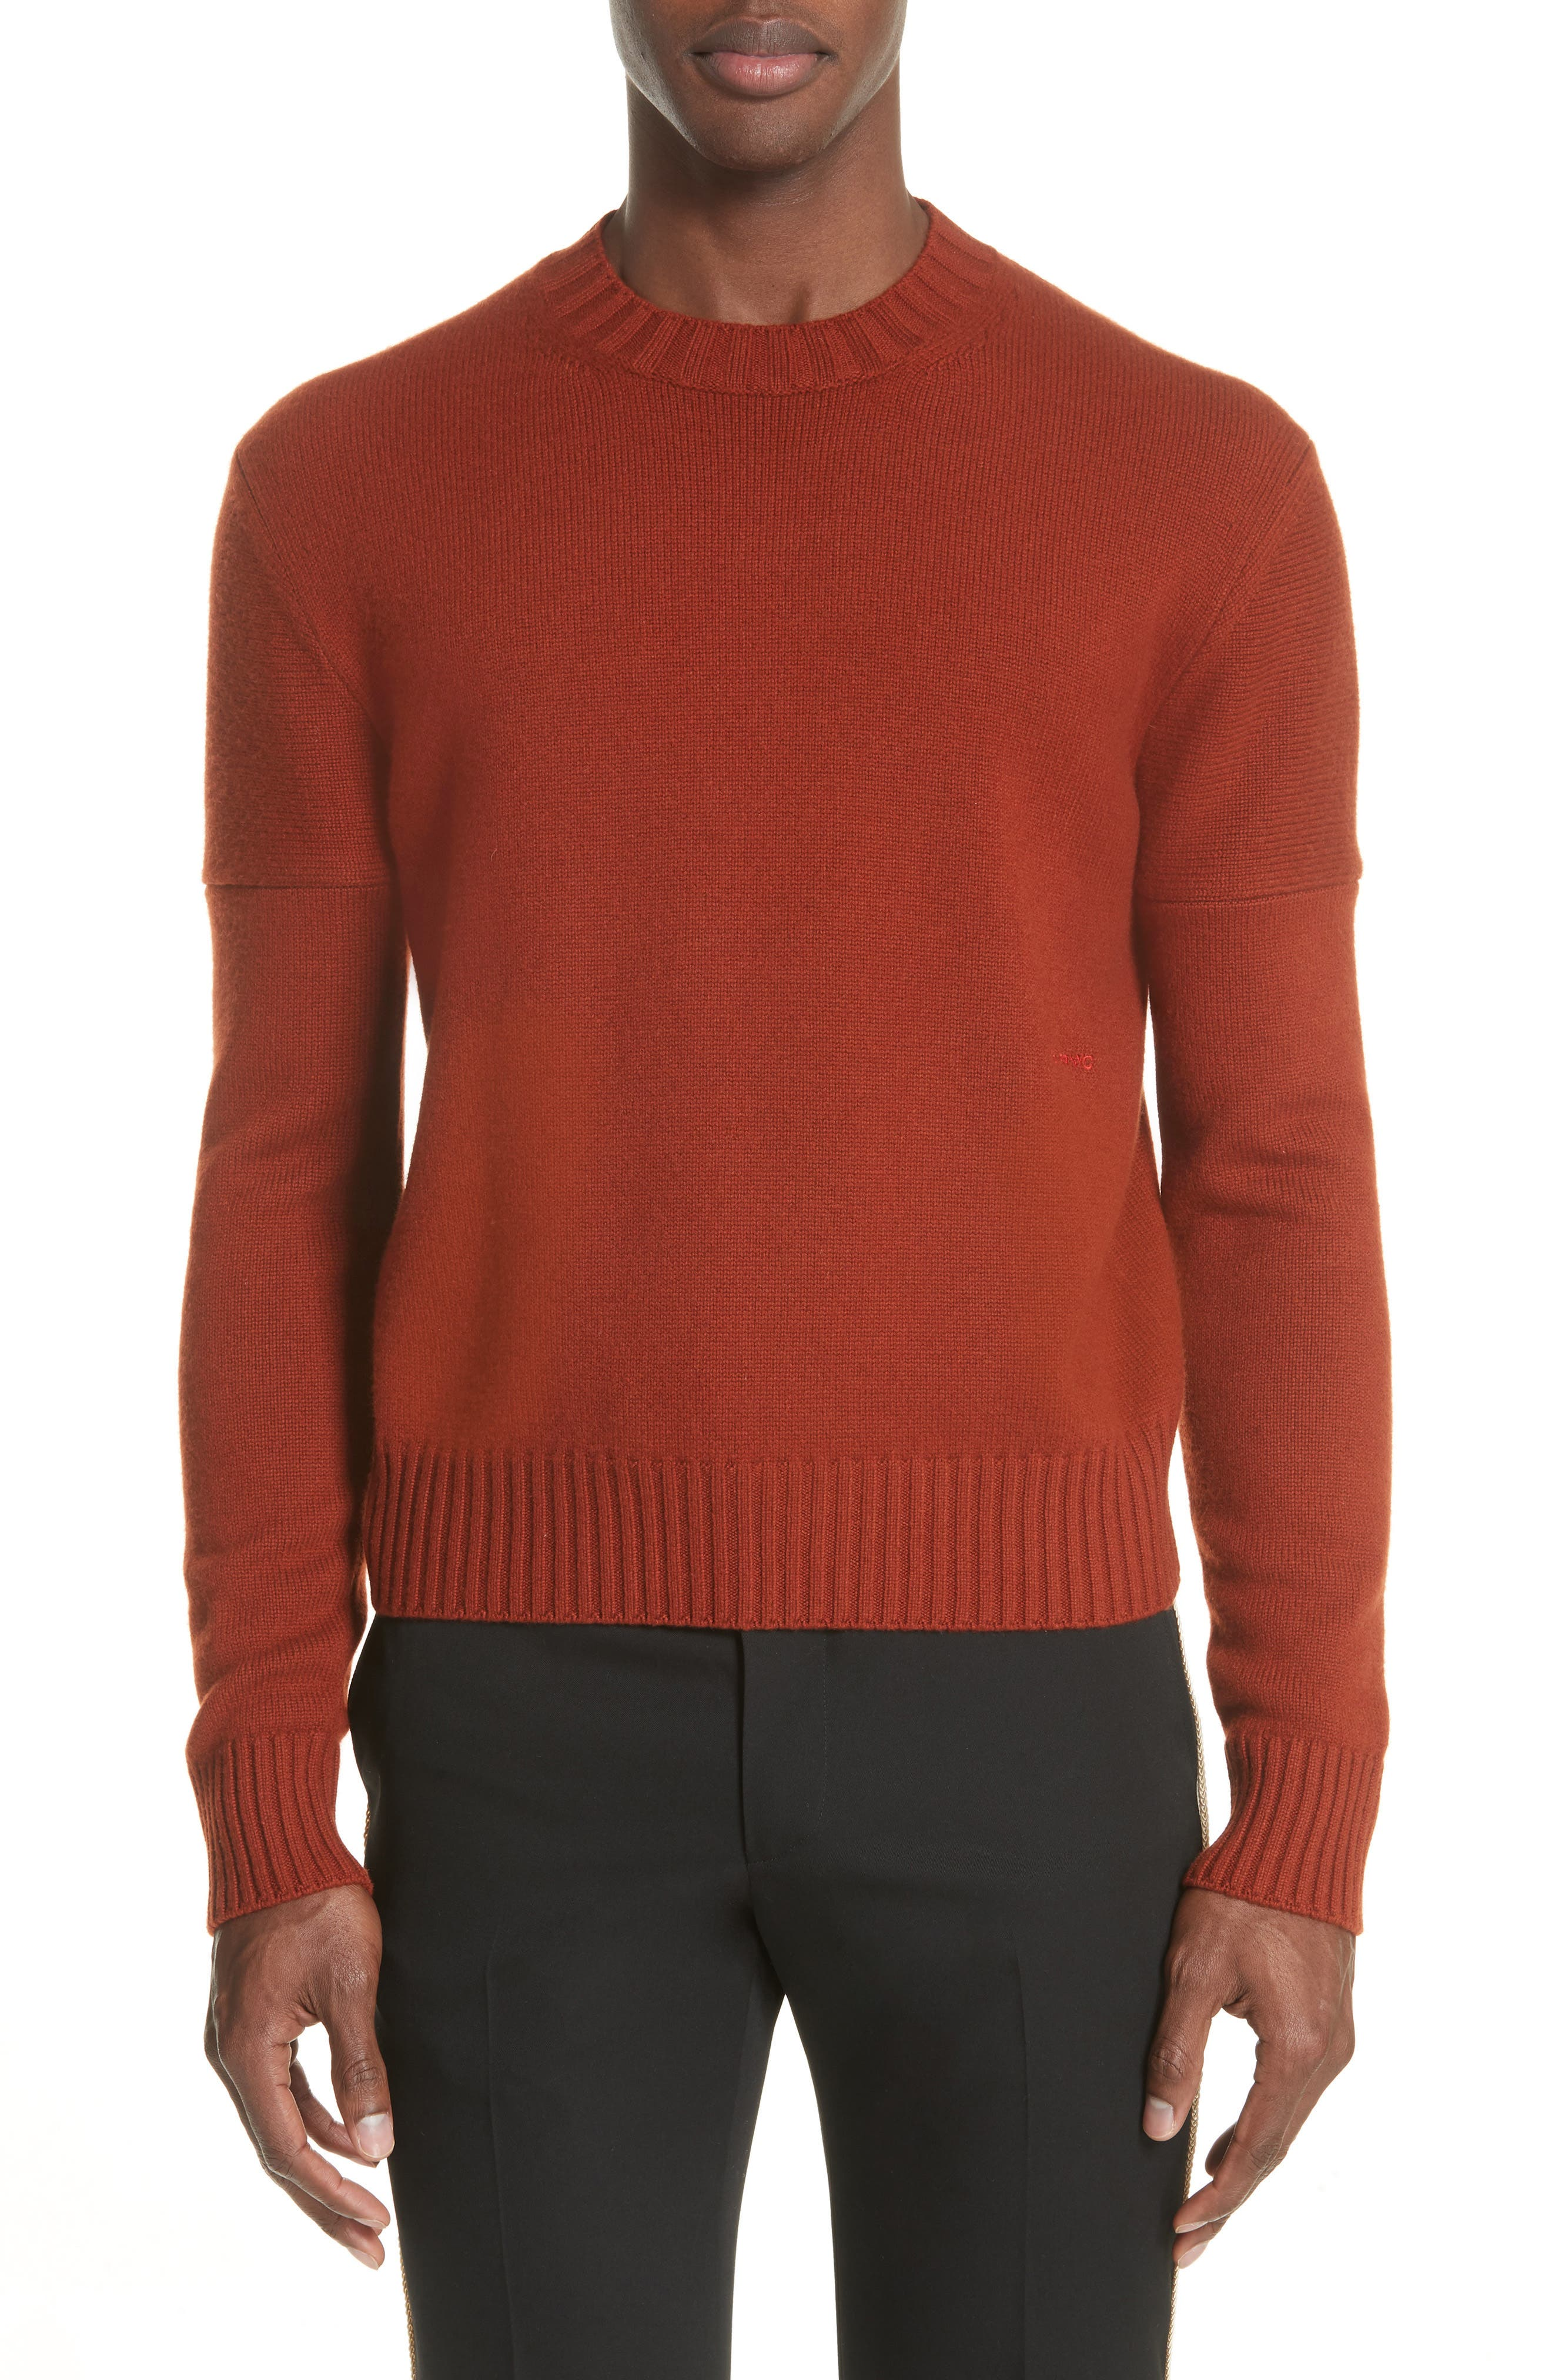 CALVIN KLEIN 205W39NYC,                             Cashmere Sweater,                             Main thumbnail 1, color,                             605